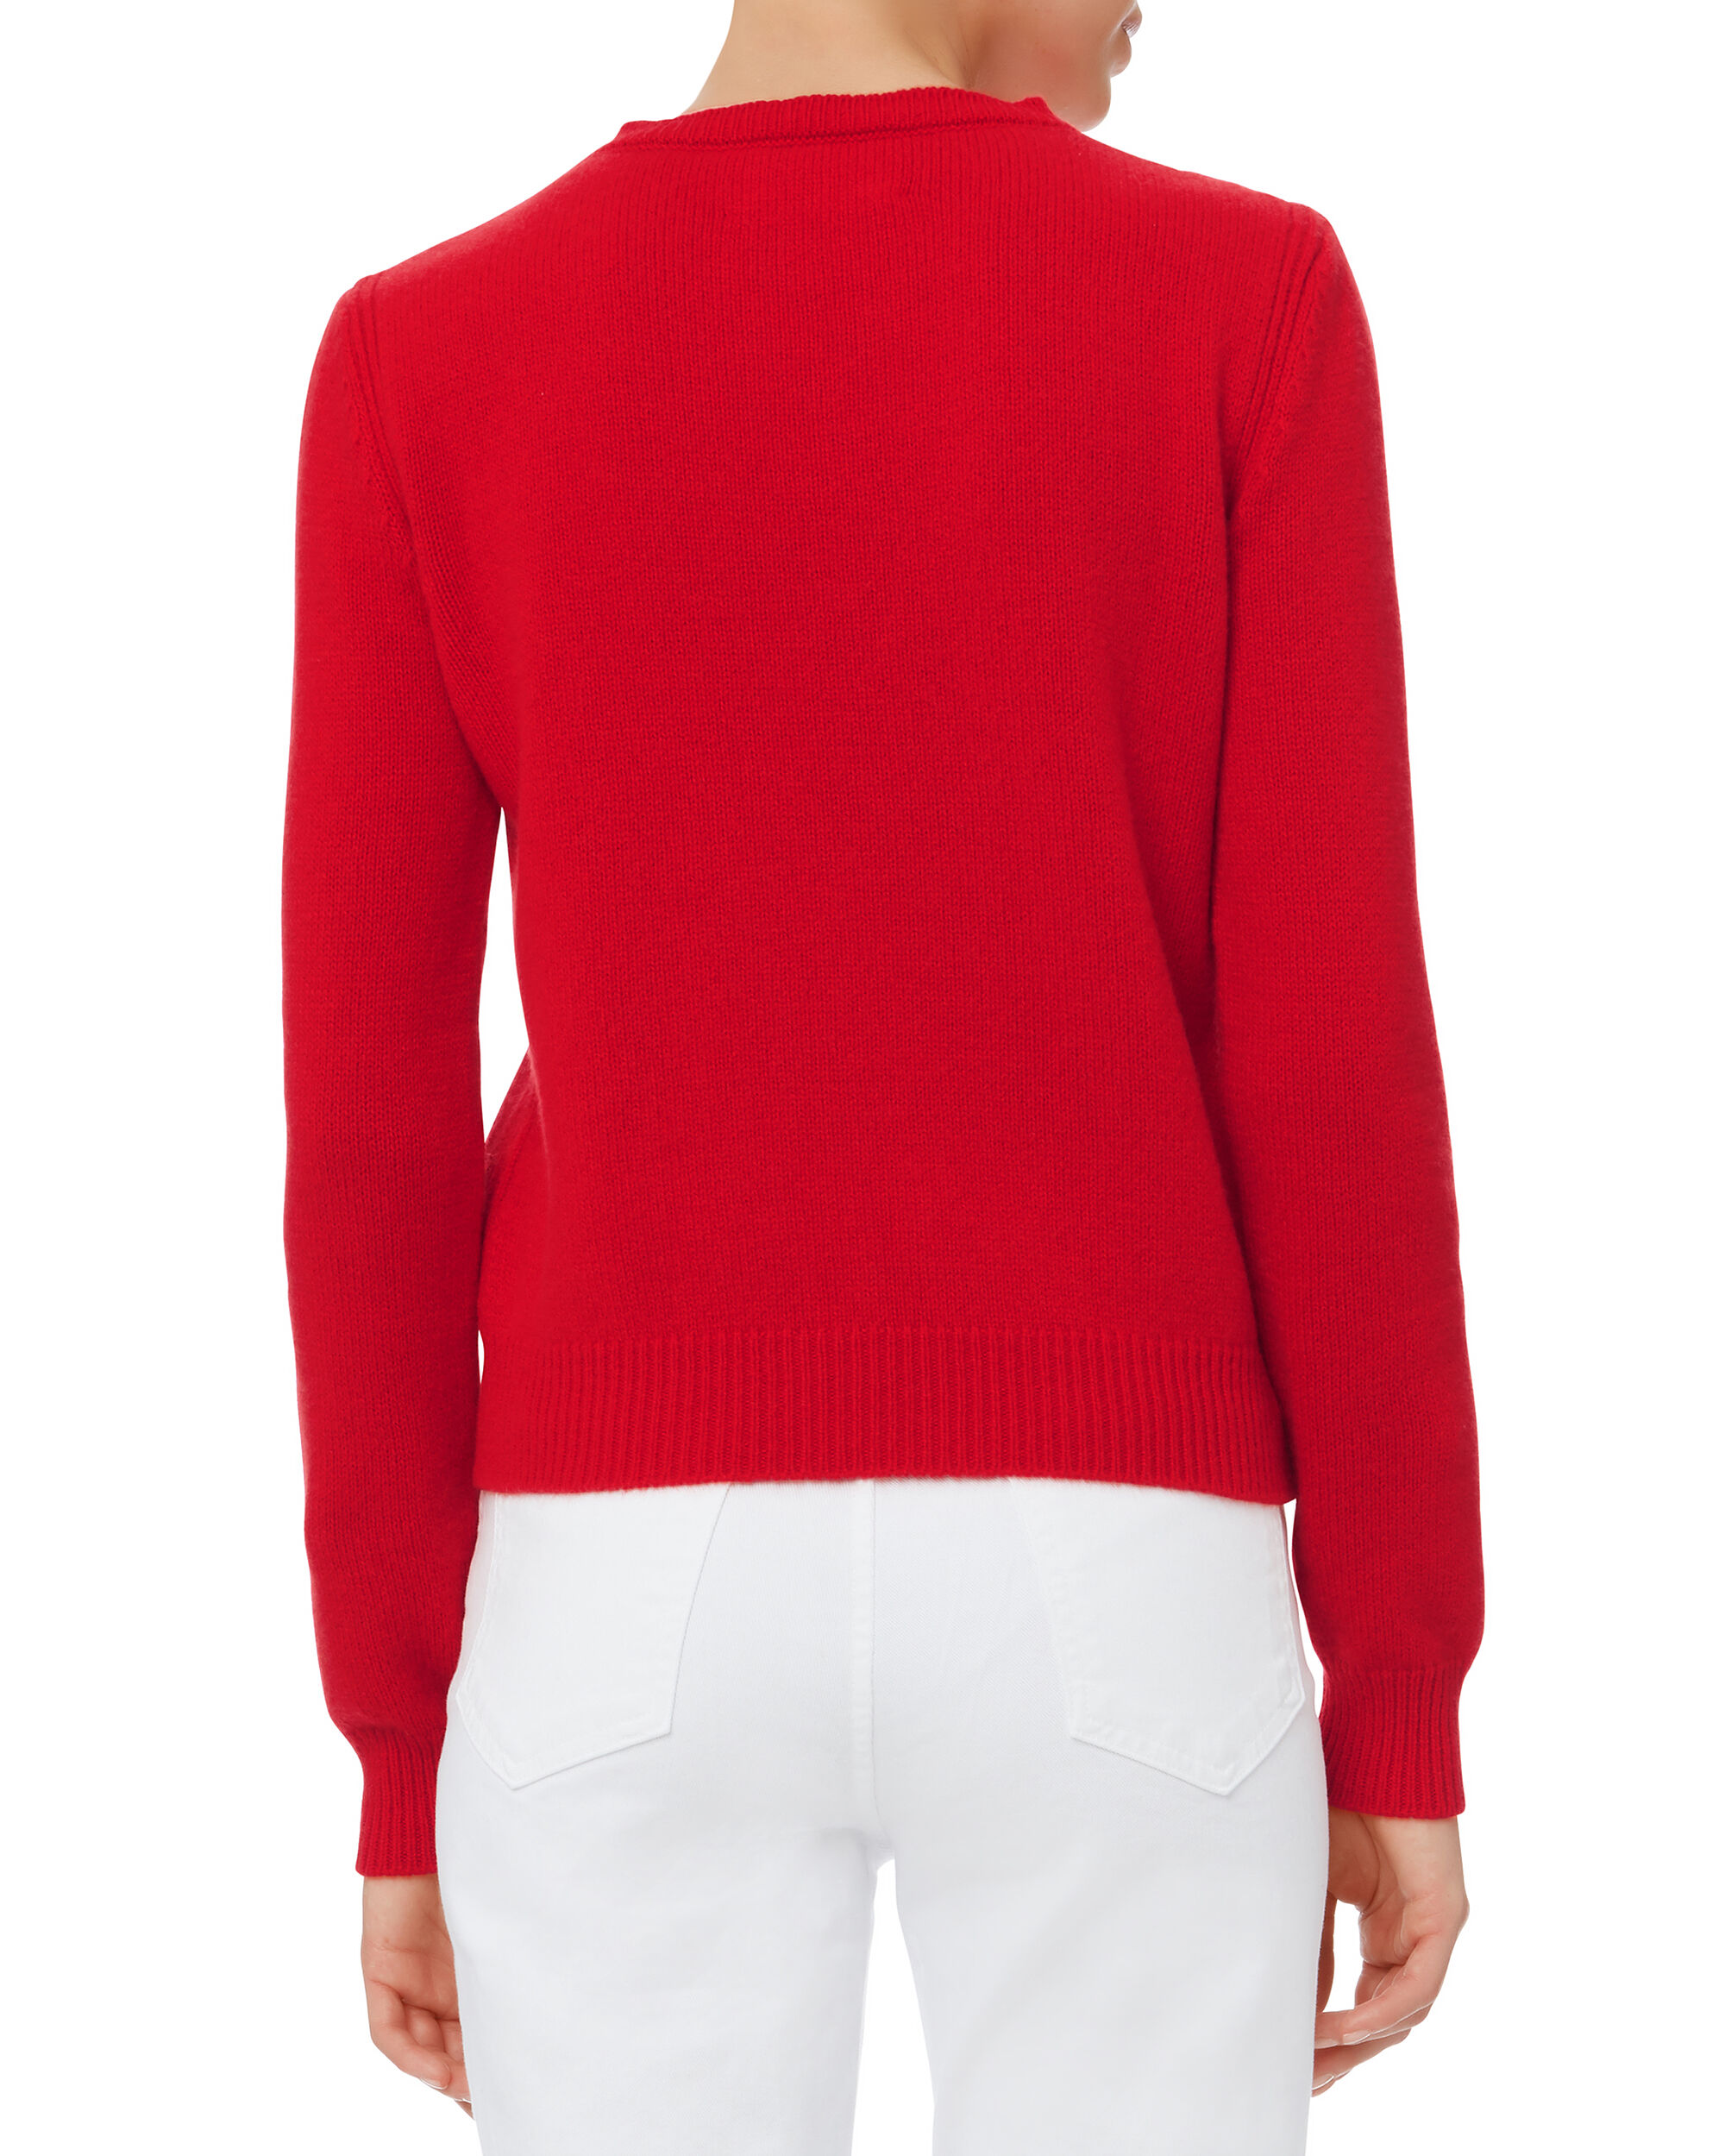 Tuesday Sweater, RED, hi-res